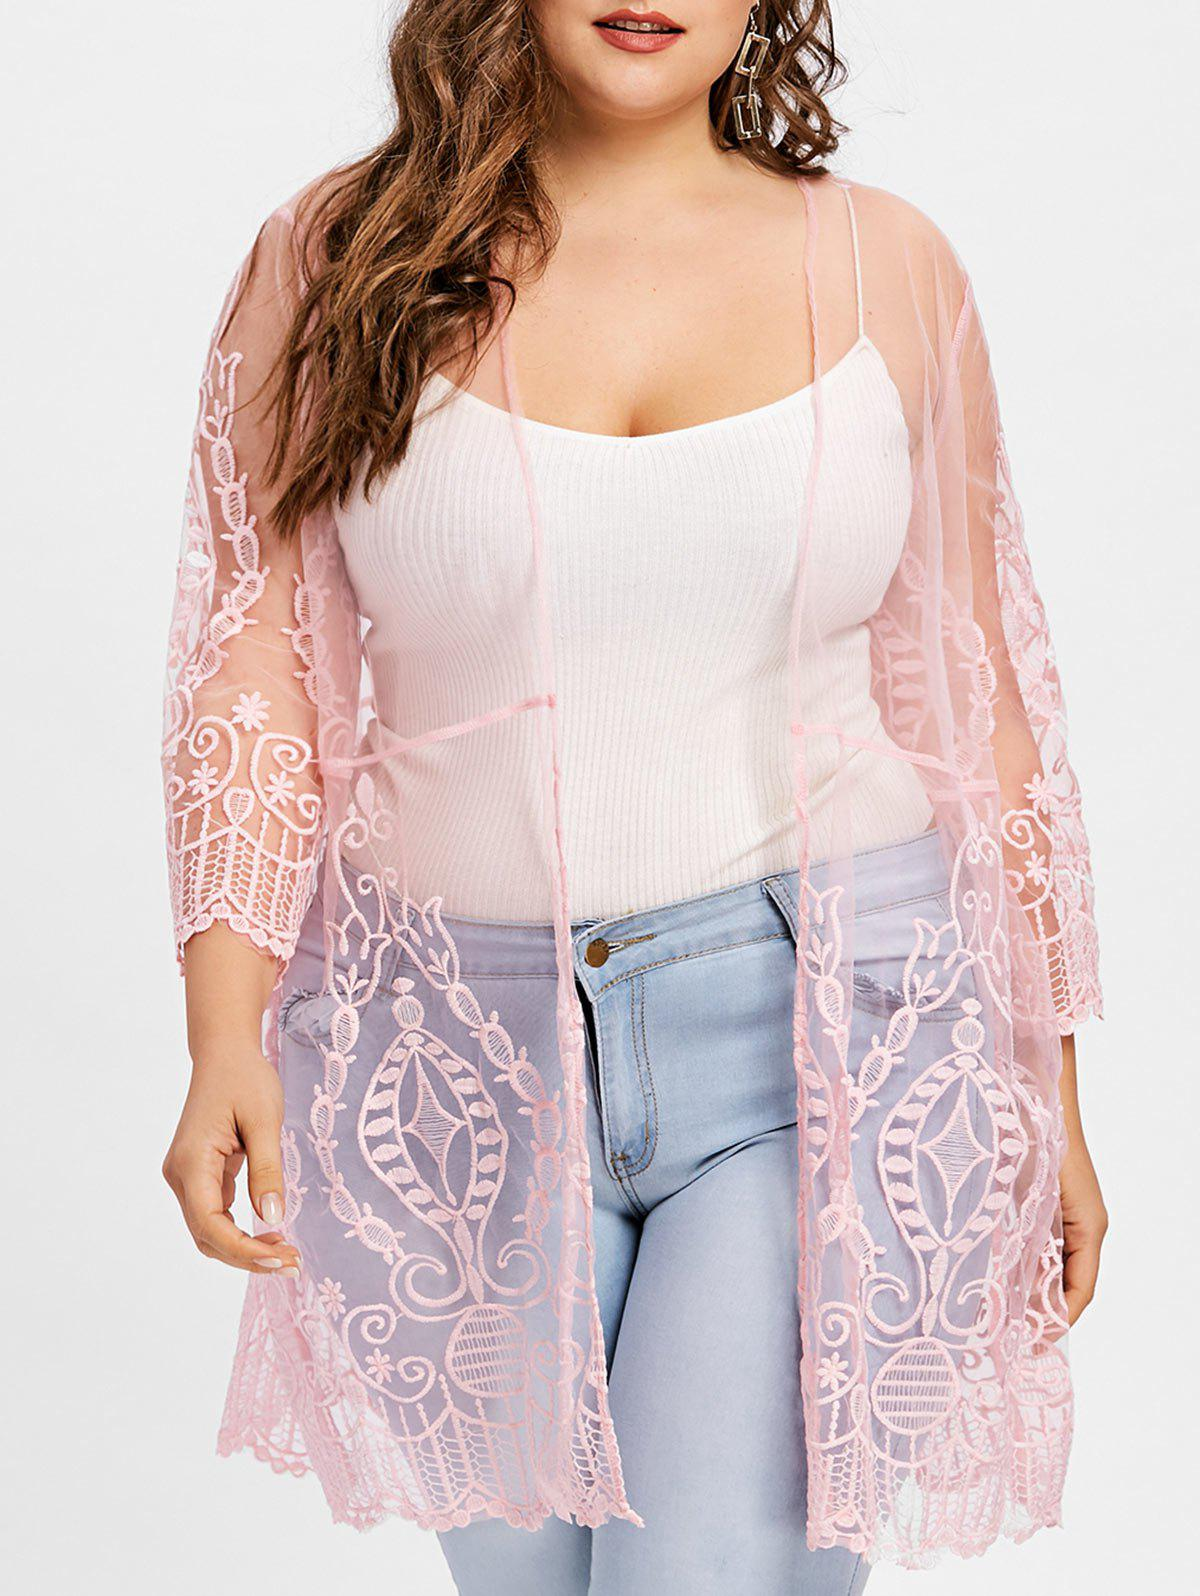 Plus Size See Thru Lace Cover Up Cardigan - PINK 3XL